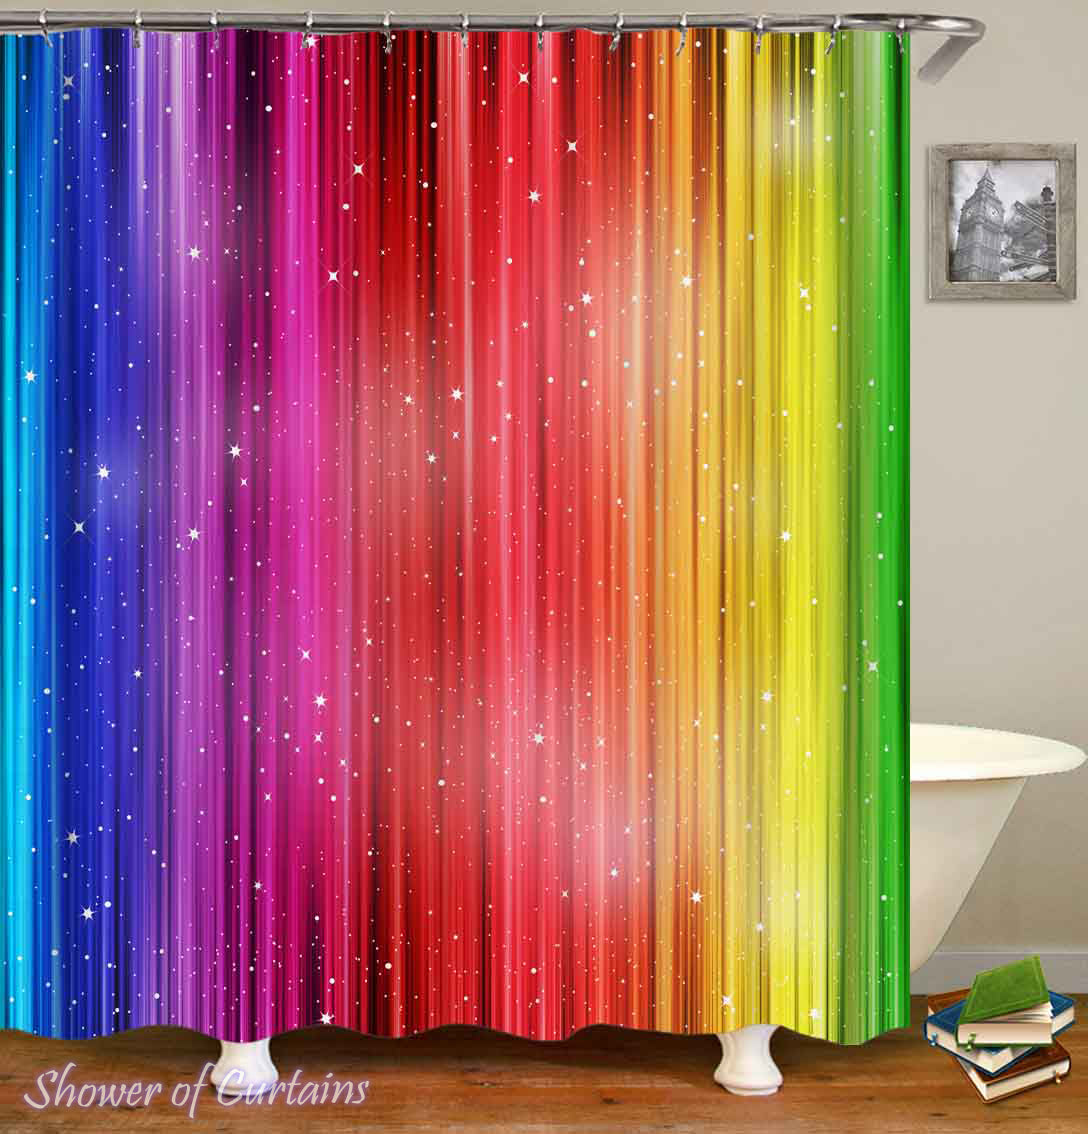 Shower Curtains | Shining Rainbow Colors – Shower of Curtains